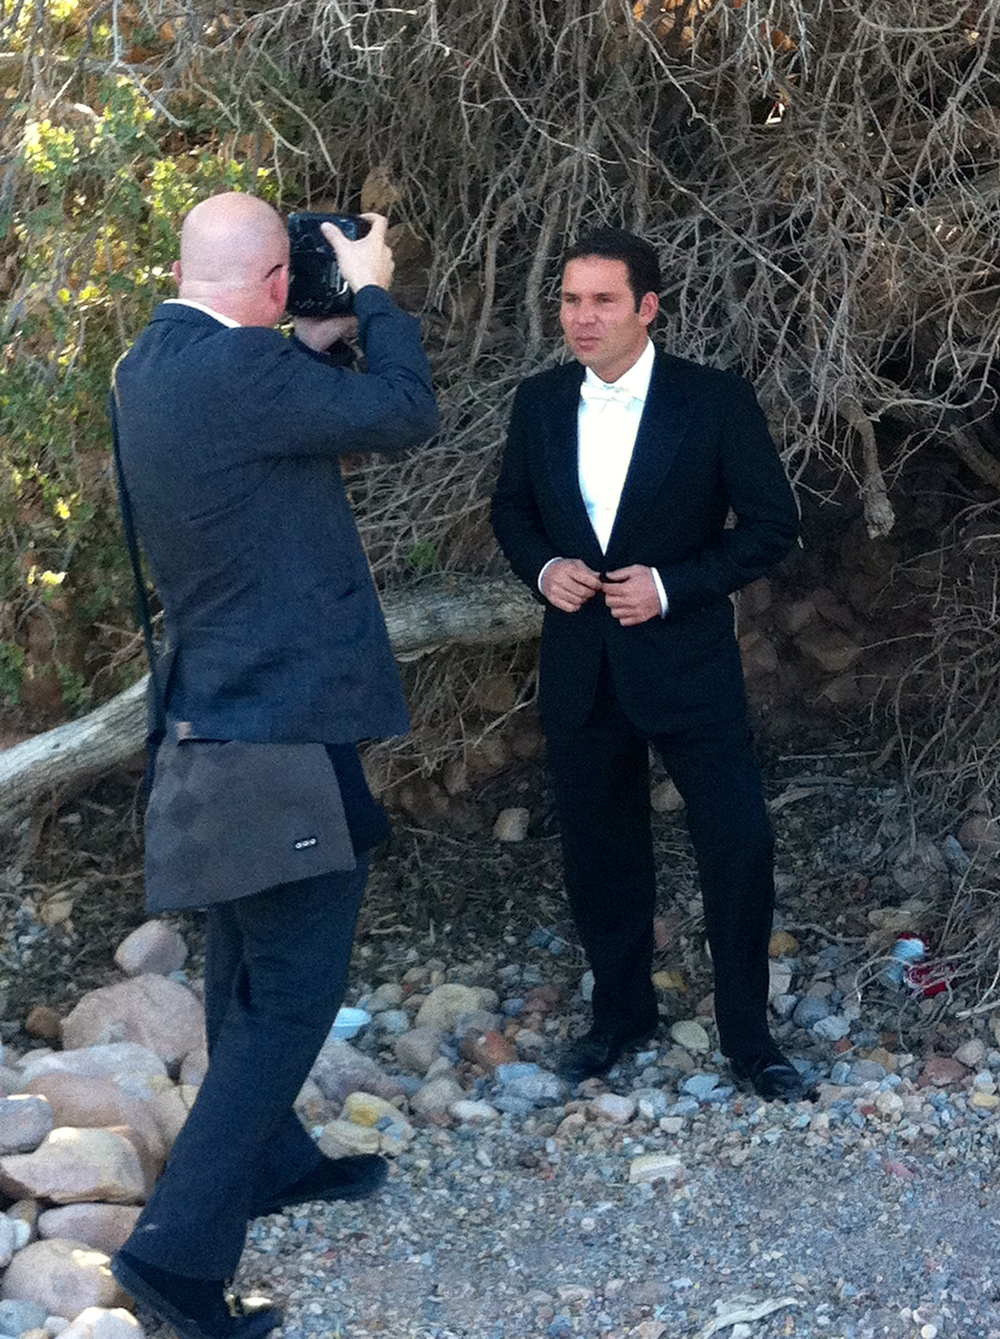 Las Vegas Wedding Photographer and all over artist John Michael Cooper of Altf Photography shooting groom turned friend David on the day of his wedding.  From the wedding of Celia & David Schaffer.